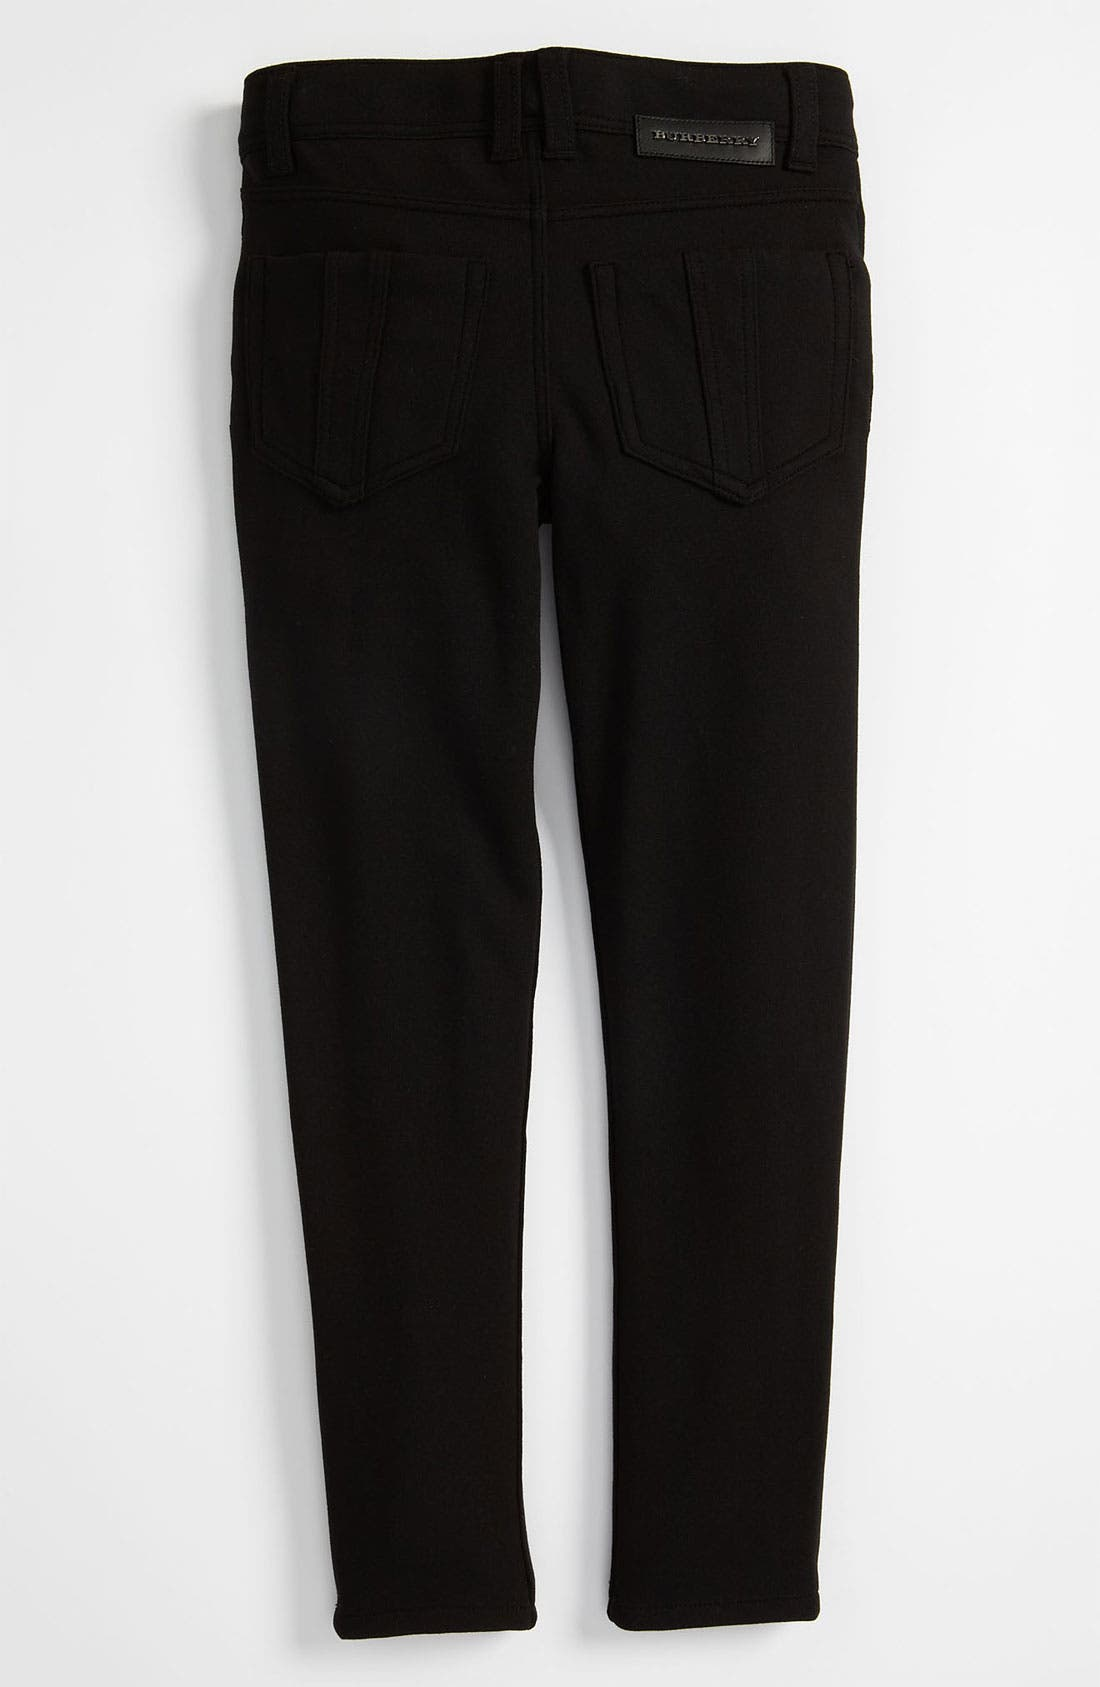 Alternate Image 1 Selected - Burberry Skinny Ponte Knit Pants (Little Girls)